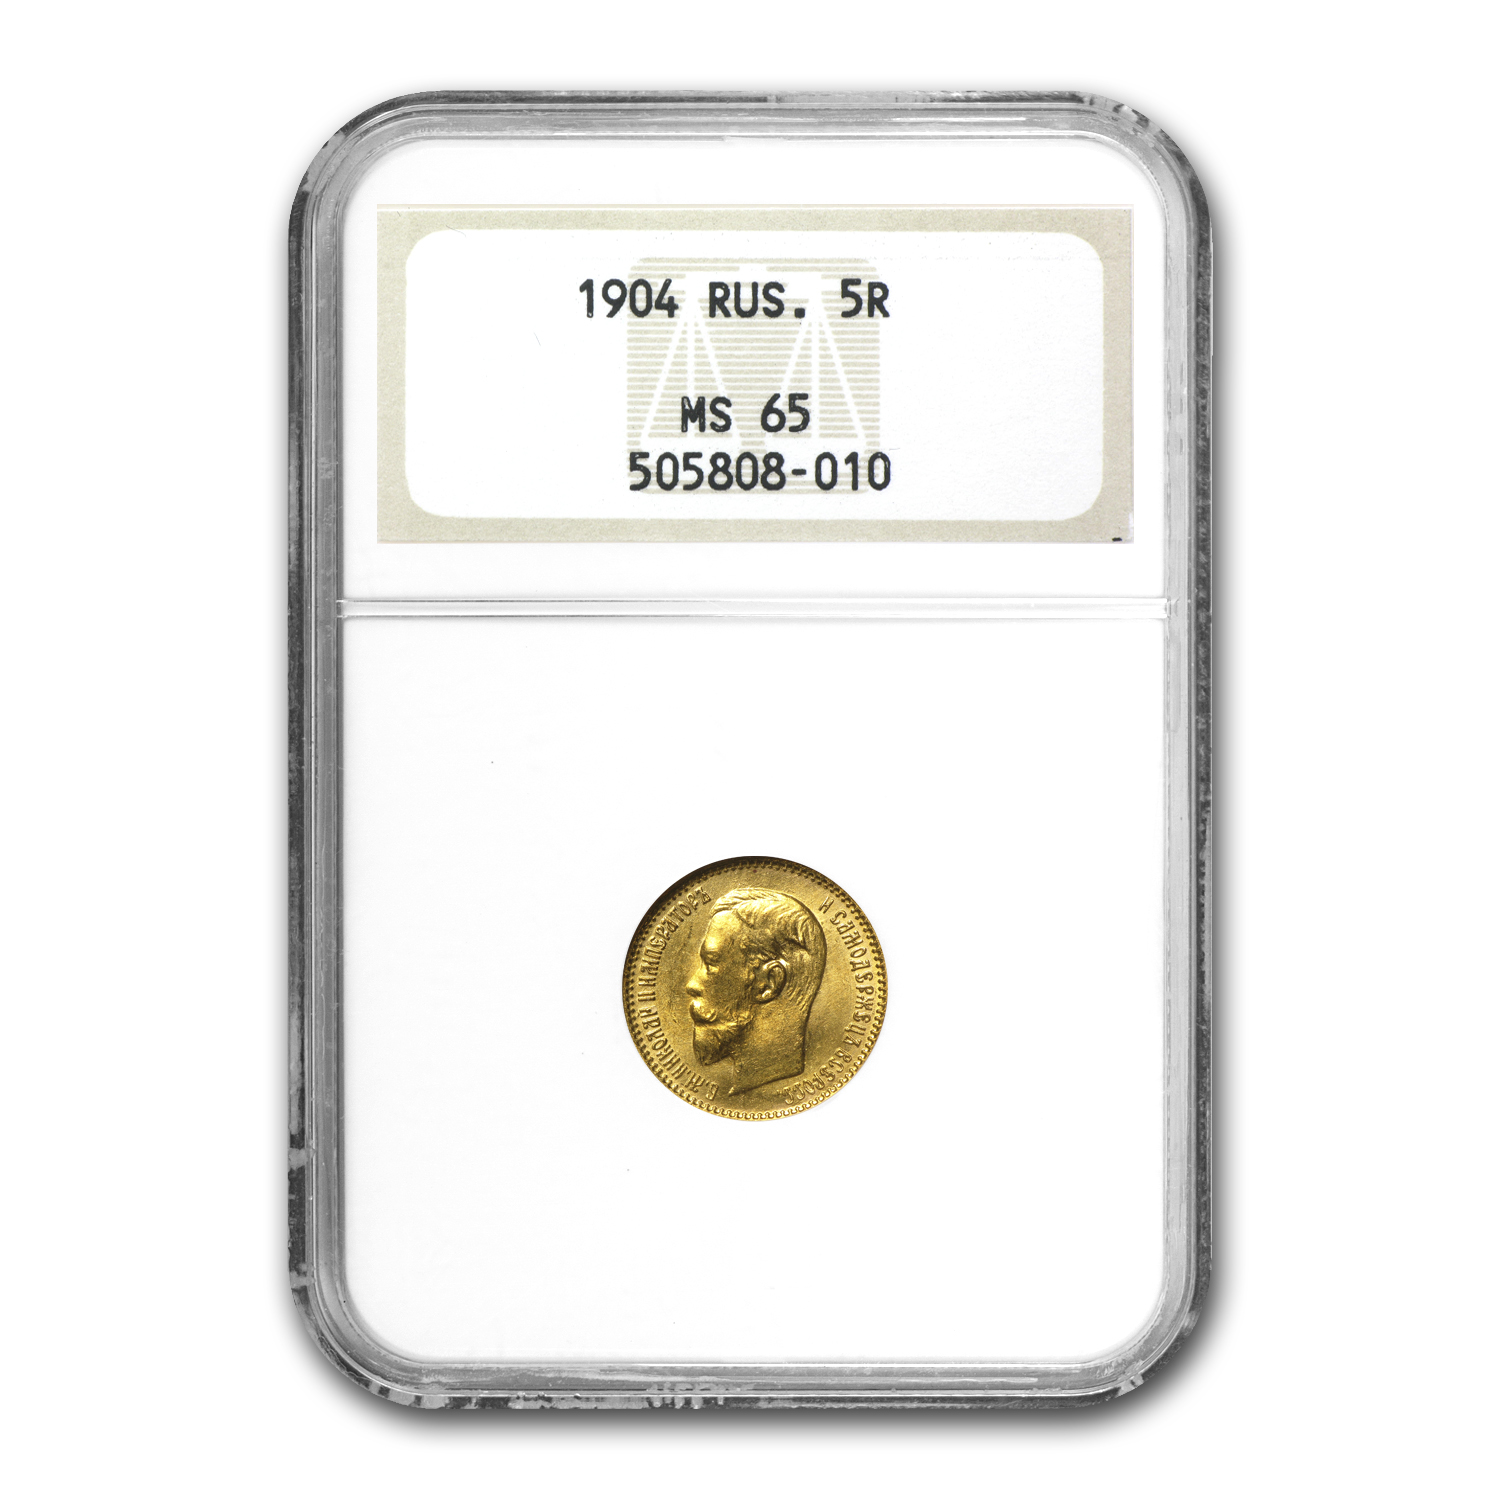 1904 Russia Gold 5 Roubles MS-65 NGC